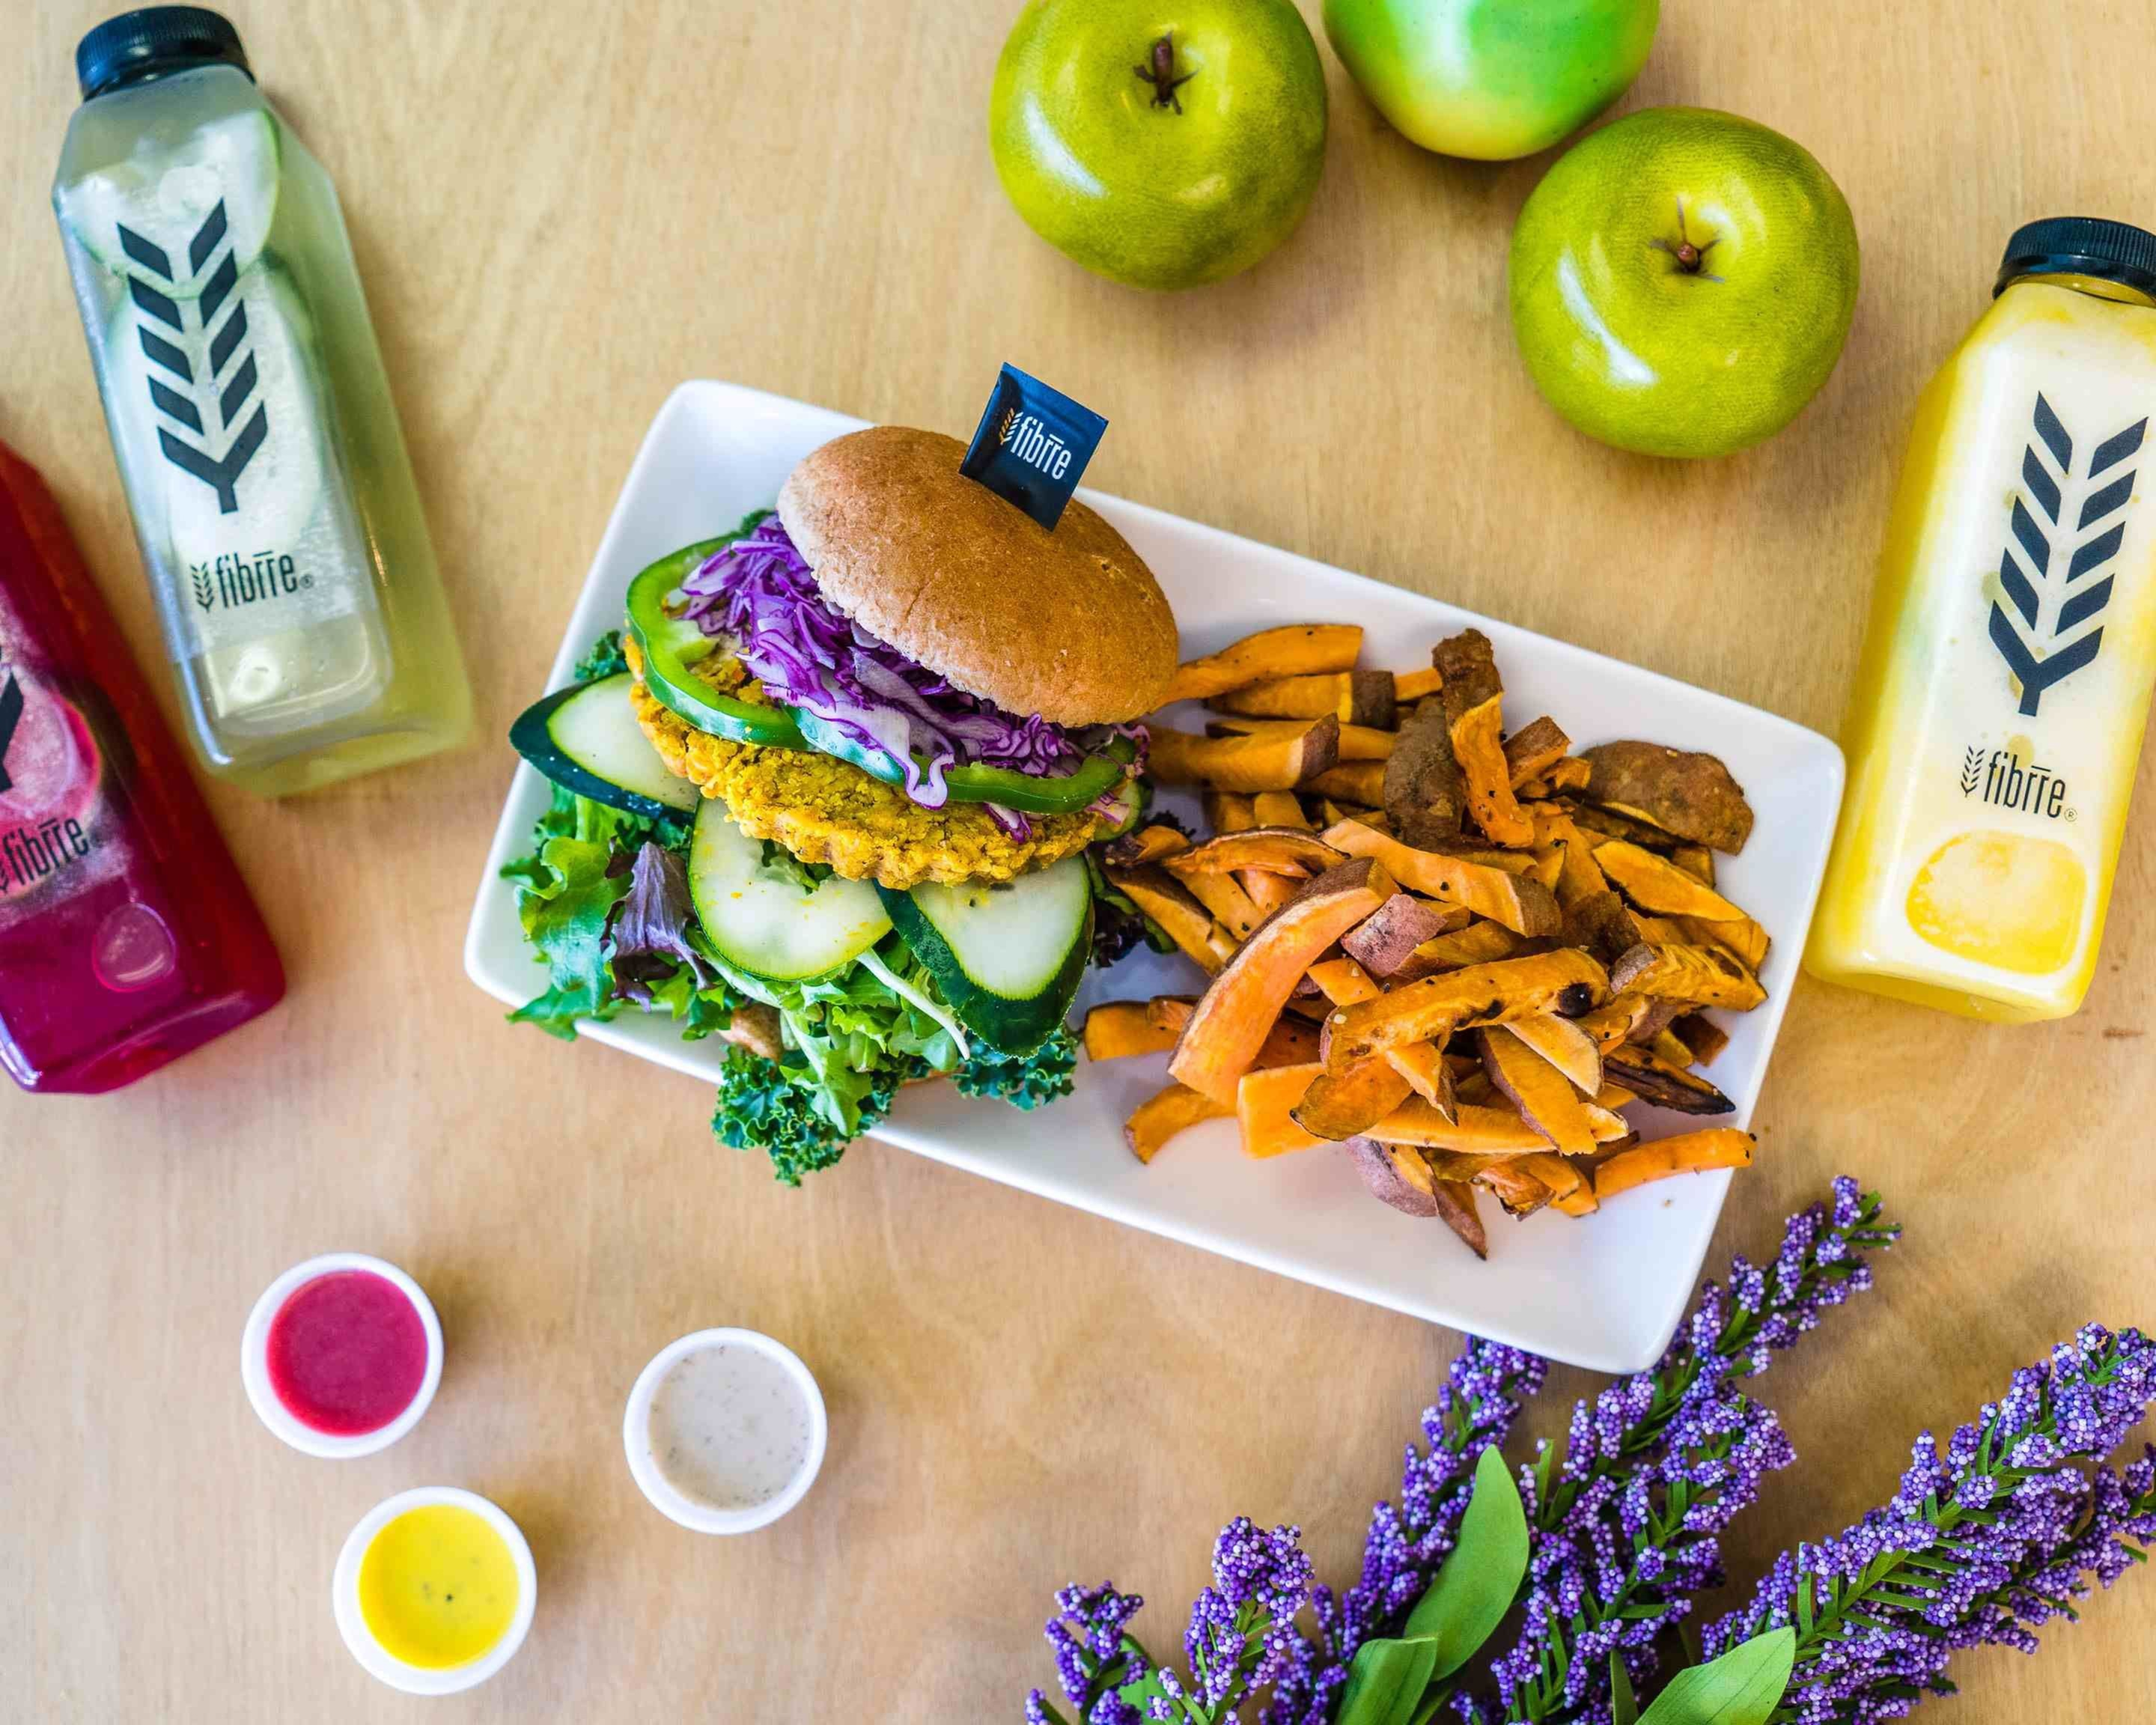 This vibrant one-of-a-kind eatery provides colorful plant-based meals featuring tasty and unique protein sources. Fibrre focuses on providing healthy food so you can nourish and fuel your body. Stop by for a delicious smoothie, a customer favorite meal box, or a hand-crafted burger! at Fibrre